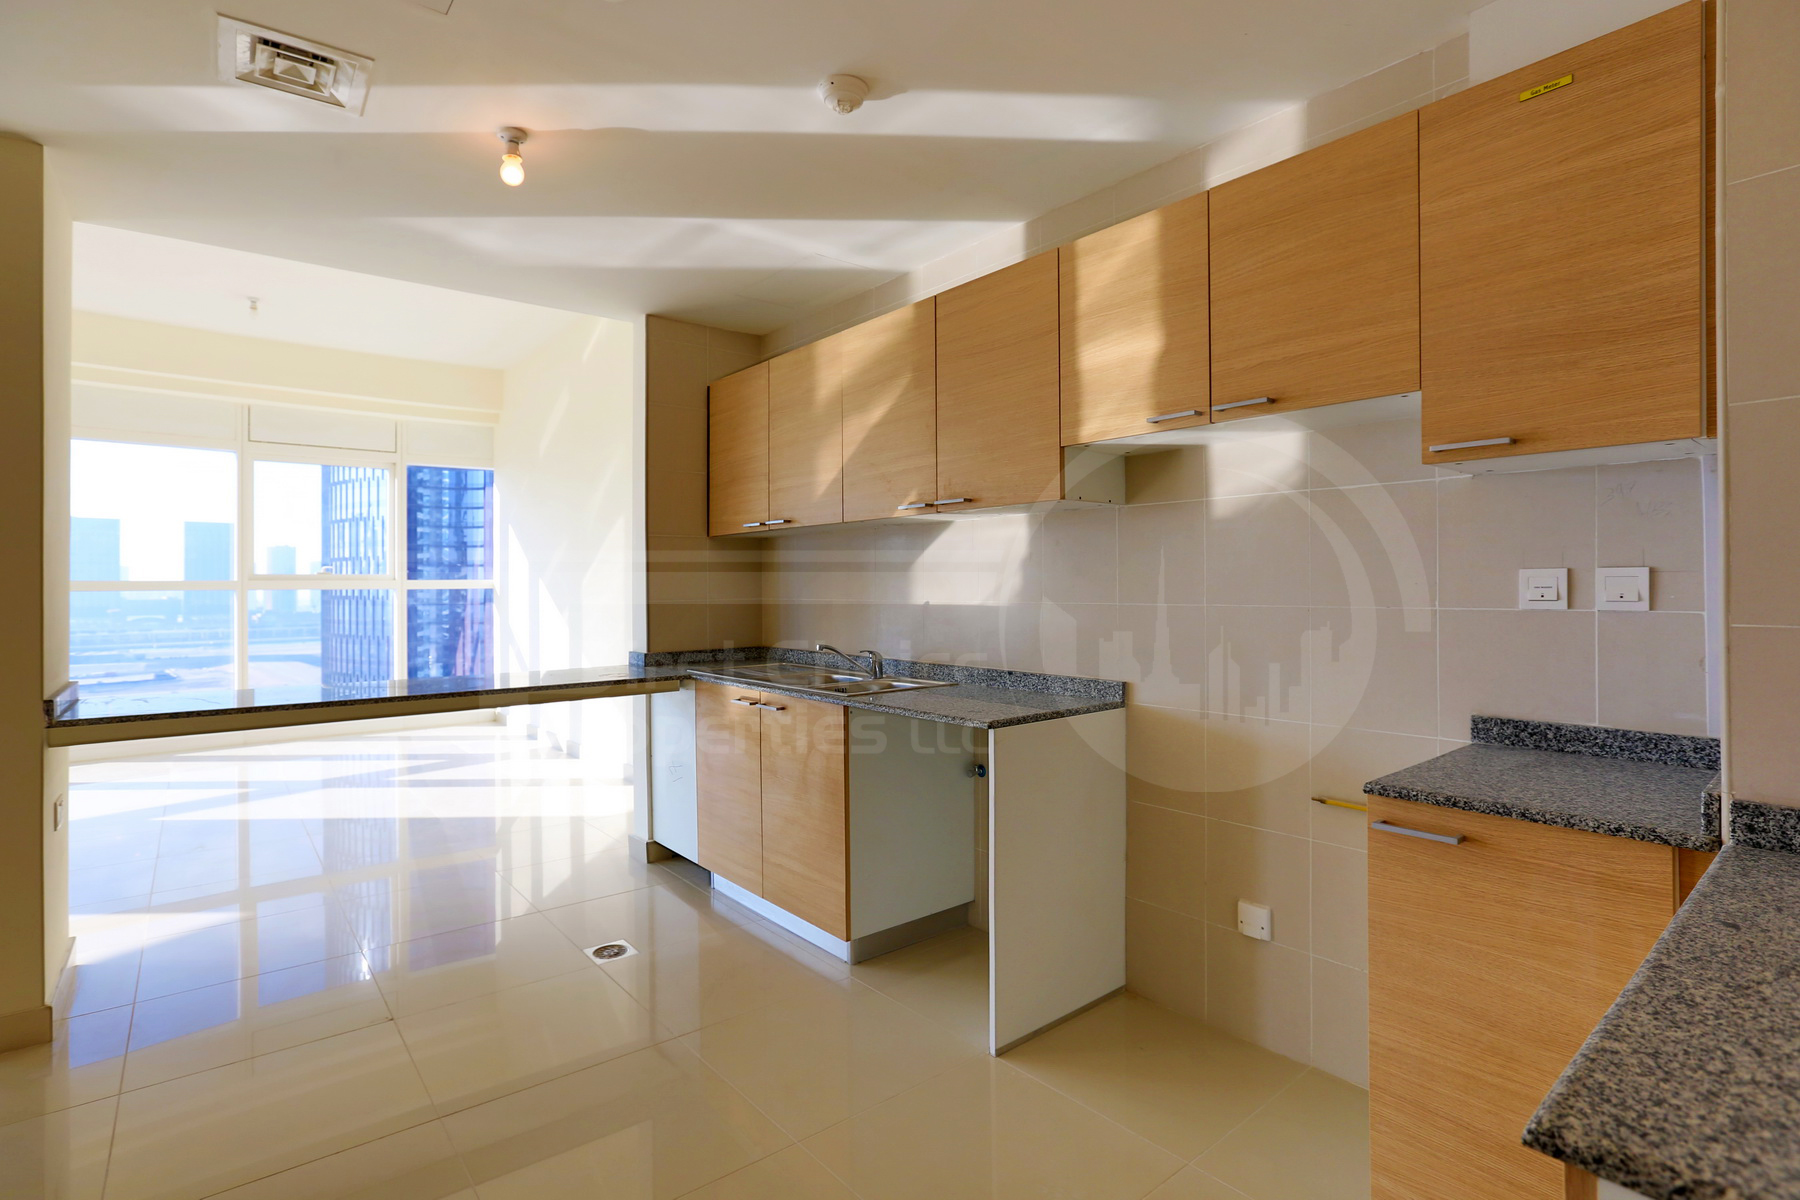 3BR Apartment - Abu Dhabi - UAE - Al Reem Island - City of Lights - C10 Building (6).JPG